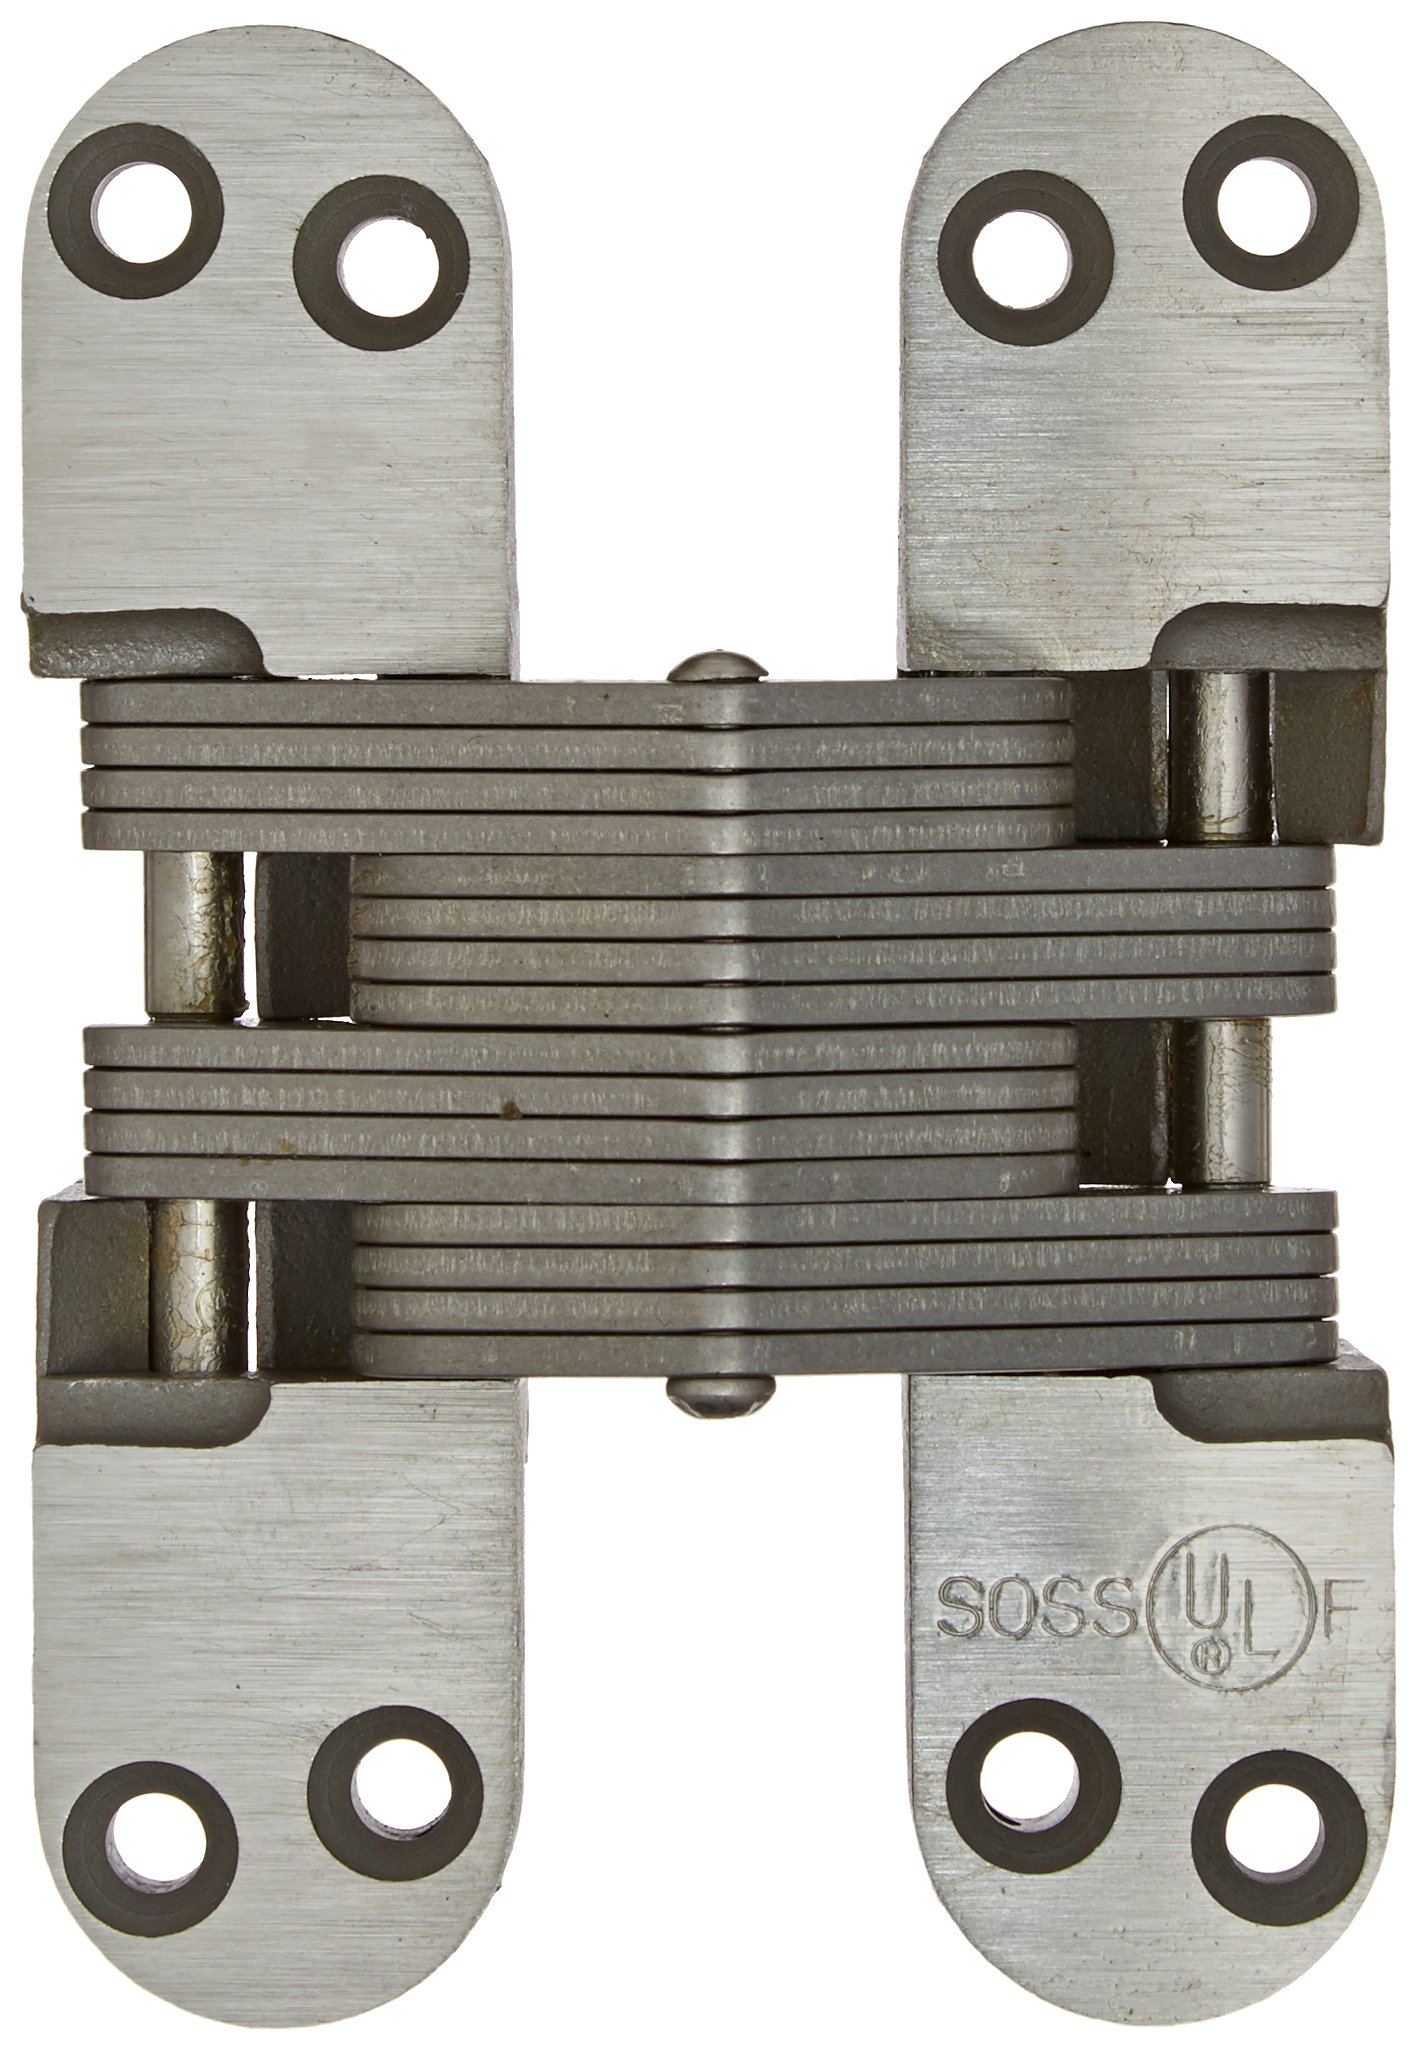 SOSS 418SS Stainless Steel 20/90/180 Min. Fire Rated Hinge for 1.75'' Doors, Satin Stainless Steel Exterior Finish